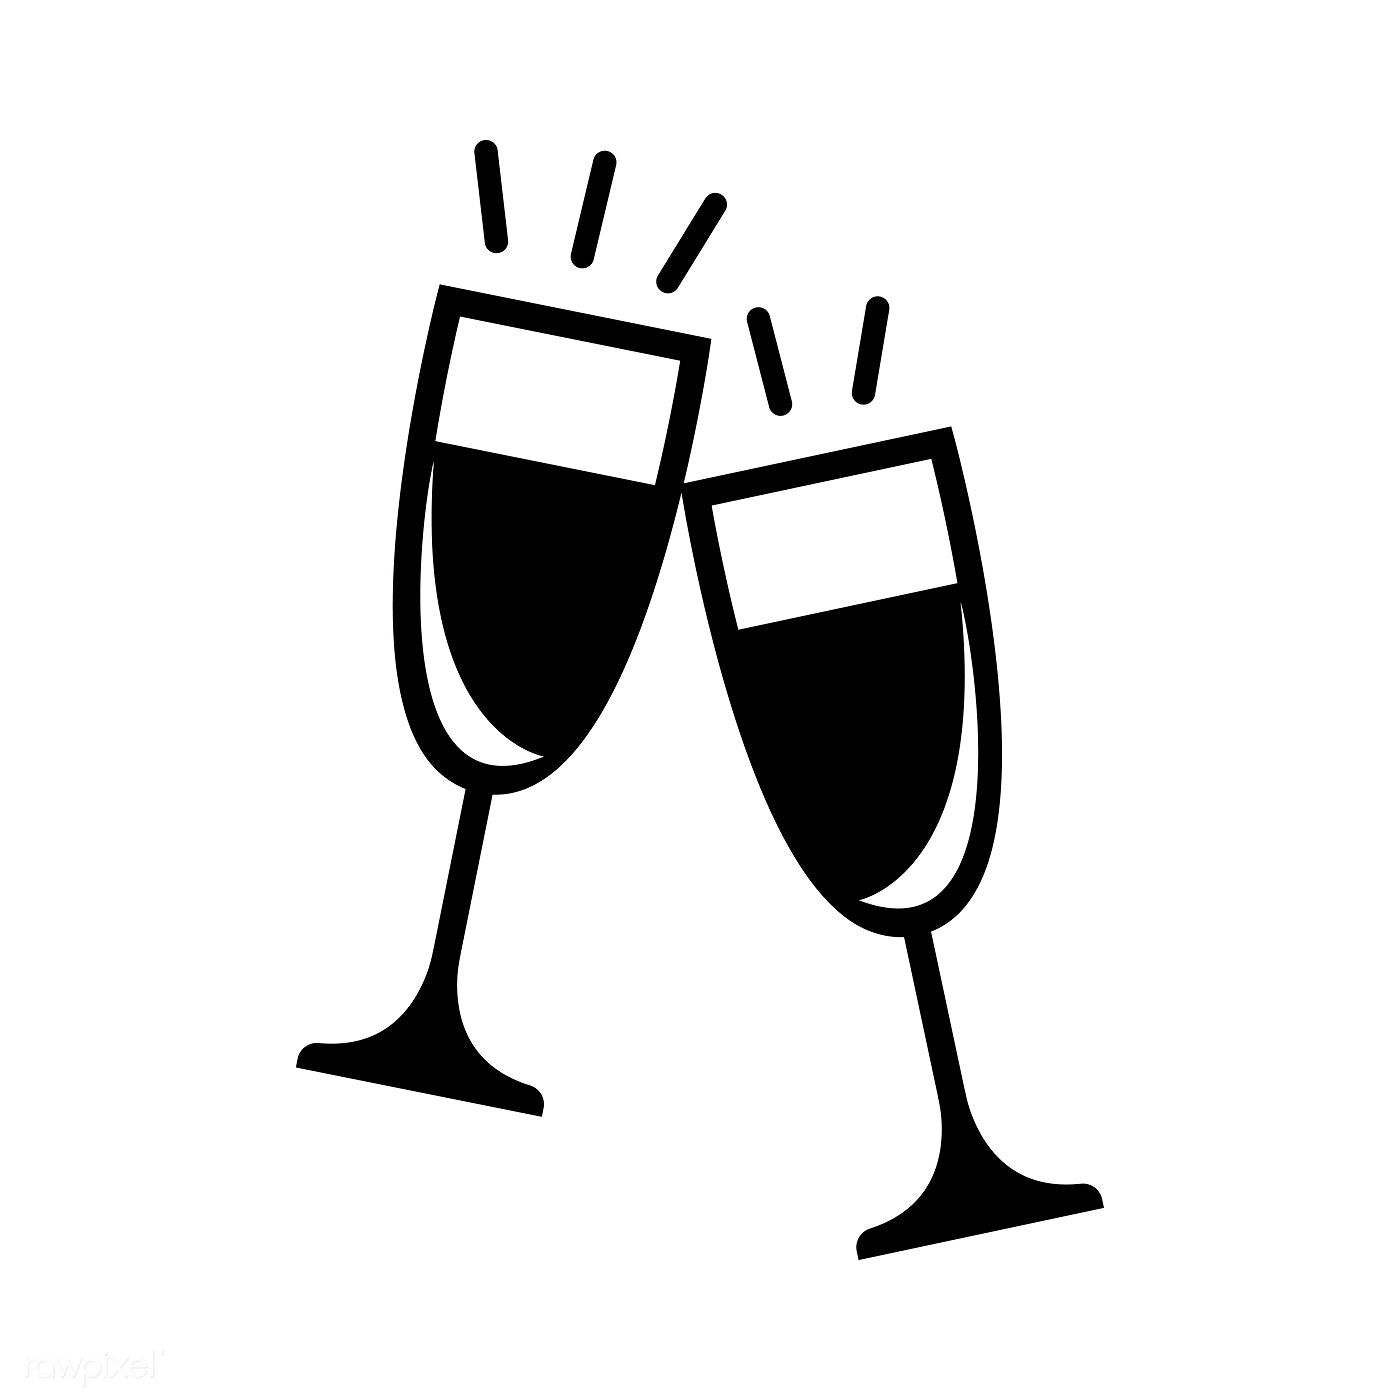 Two Champagne Glasses Graphic Illustration Free Image By Rawpixel Com Manotang Graphic Illustration Champagne Glasses Beer Illustration